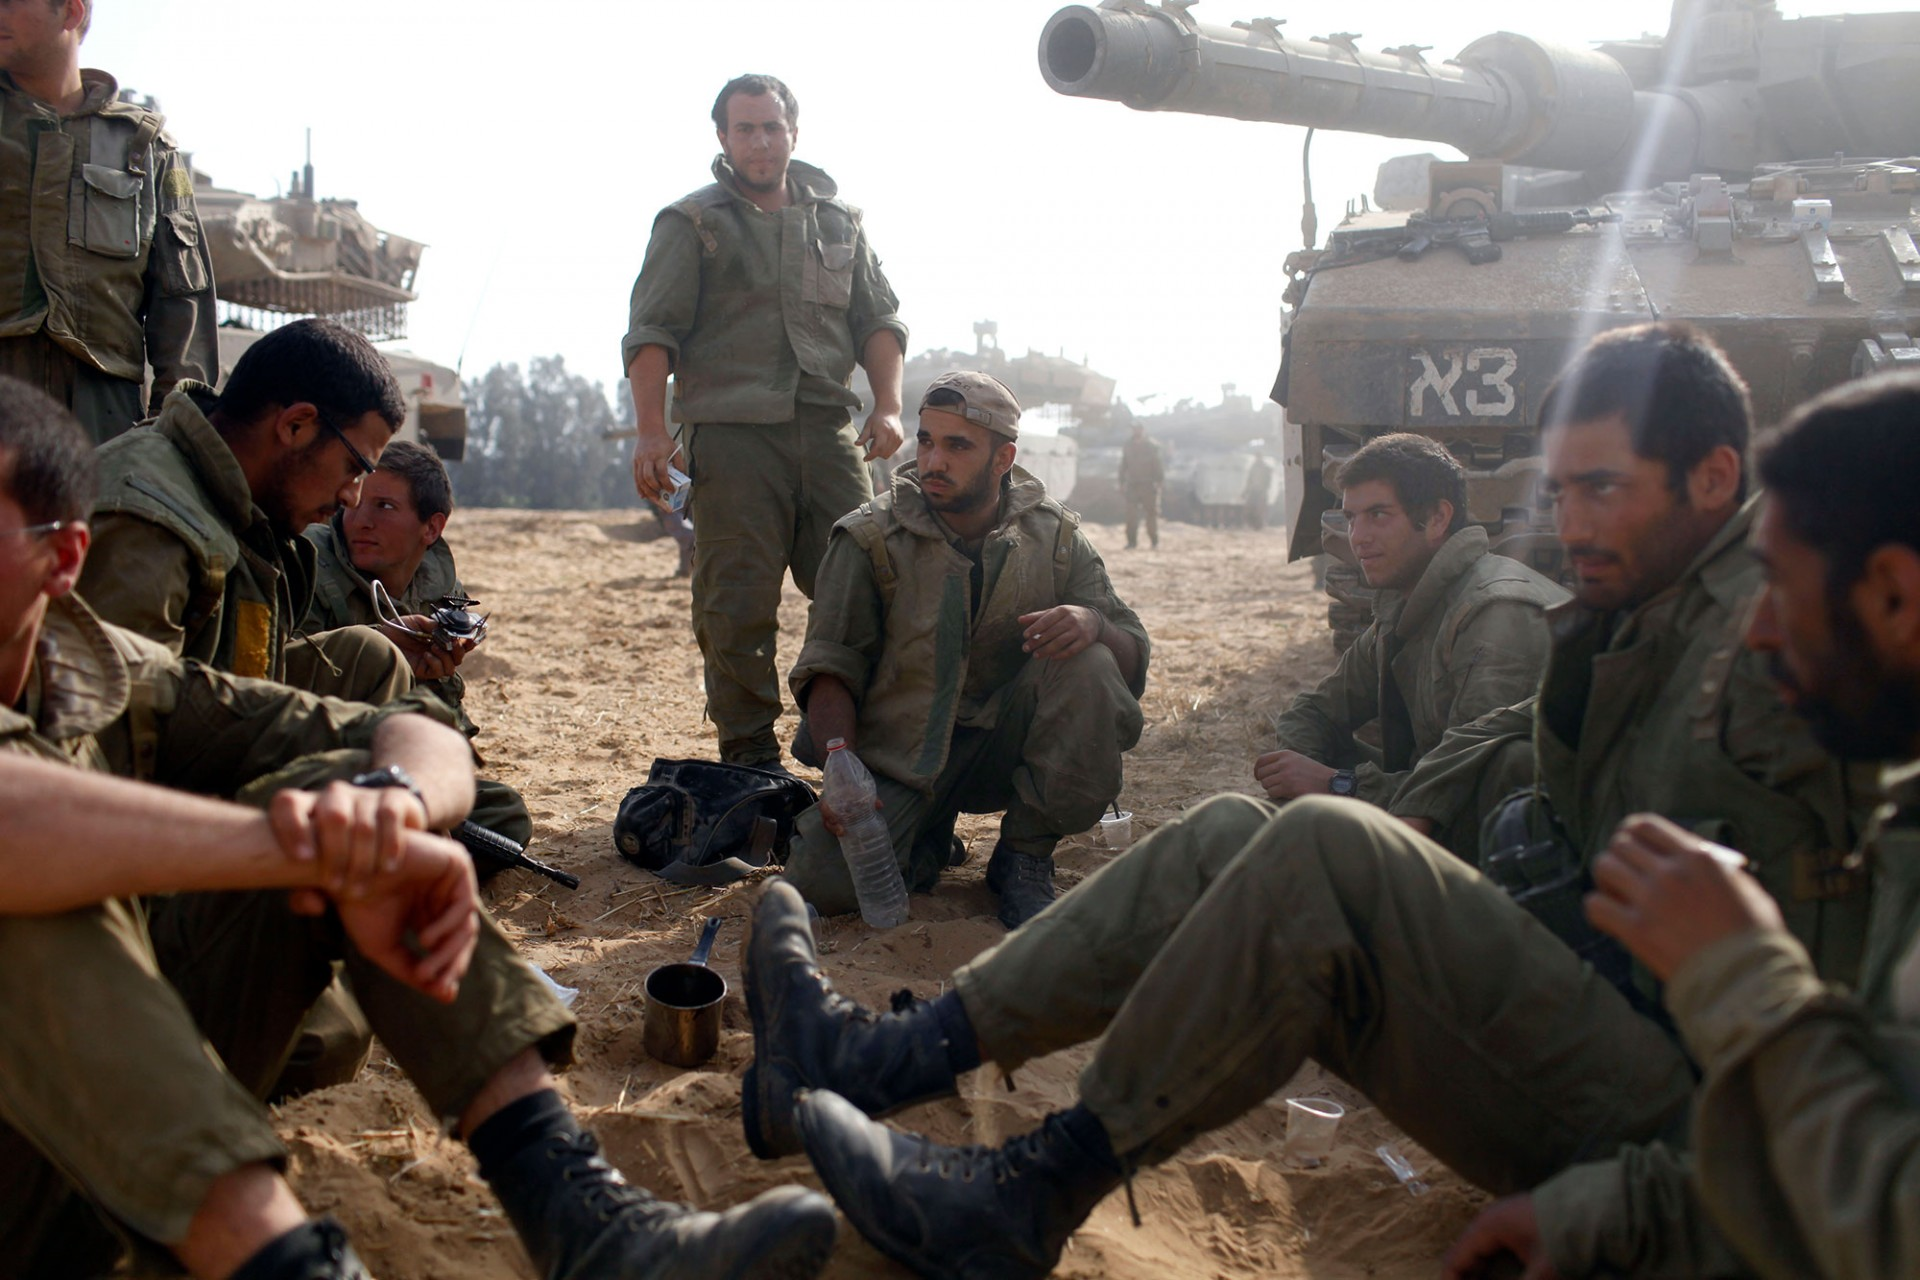 Israeli soldiers sit next to a tank in a deployment area on August 02, 2014 on Israel's border with the Gaza Strip.